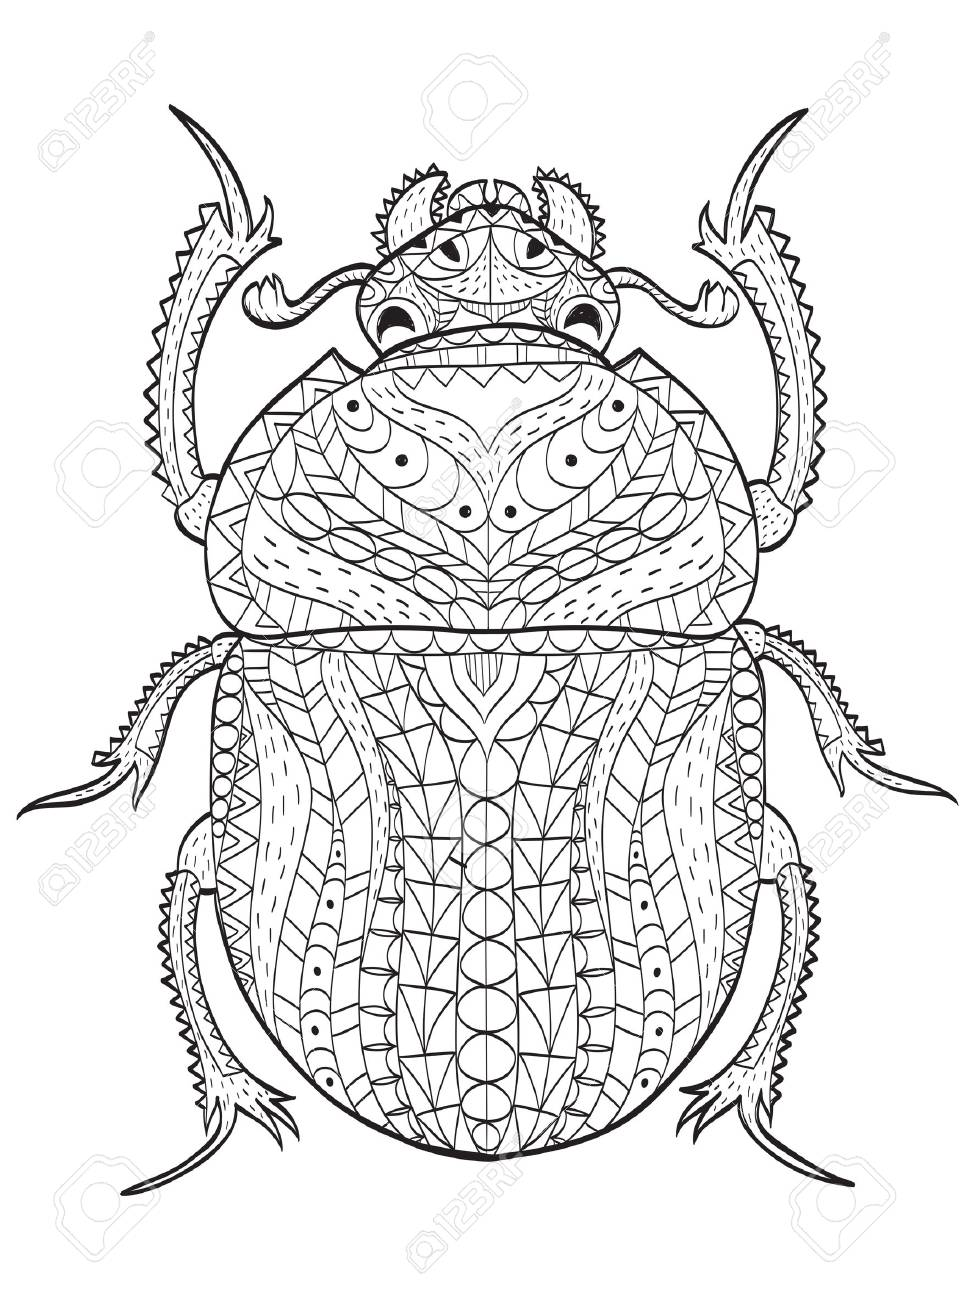 Egyptian Scarab Beetle Coloring Book Vector Illustration Anti Stress For Adult Animal